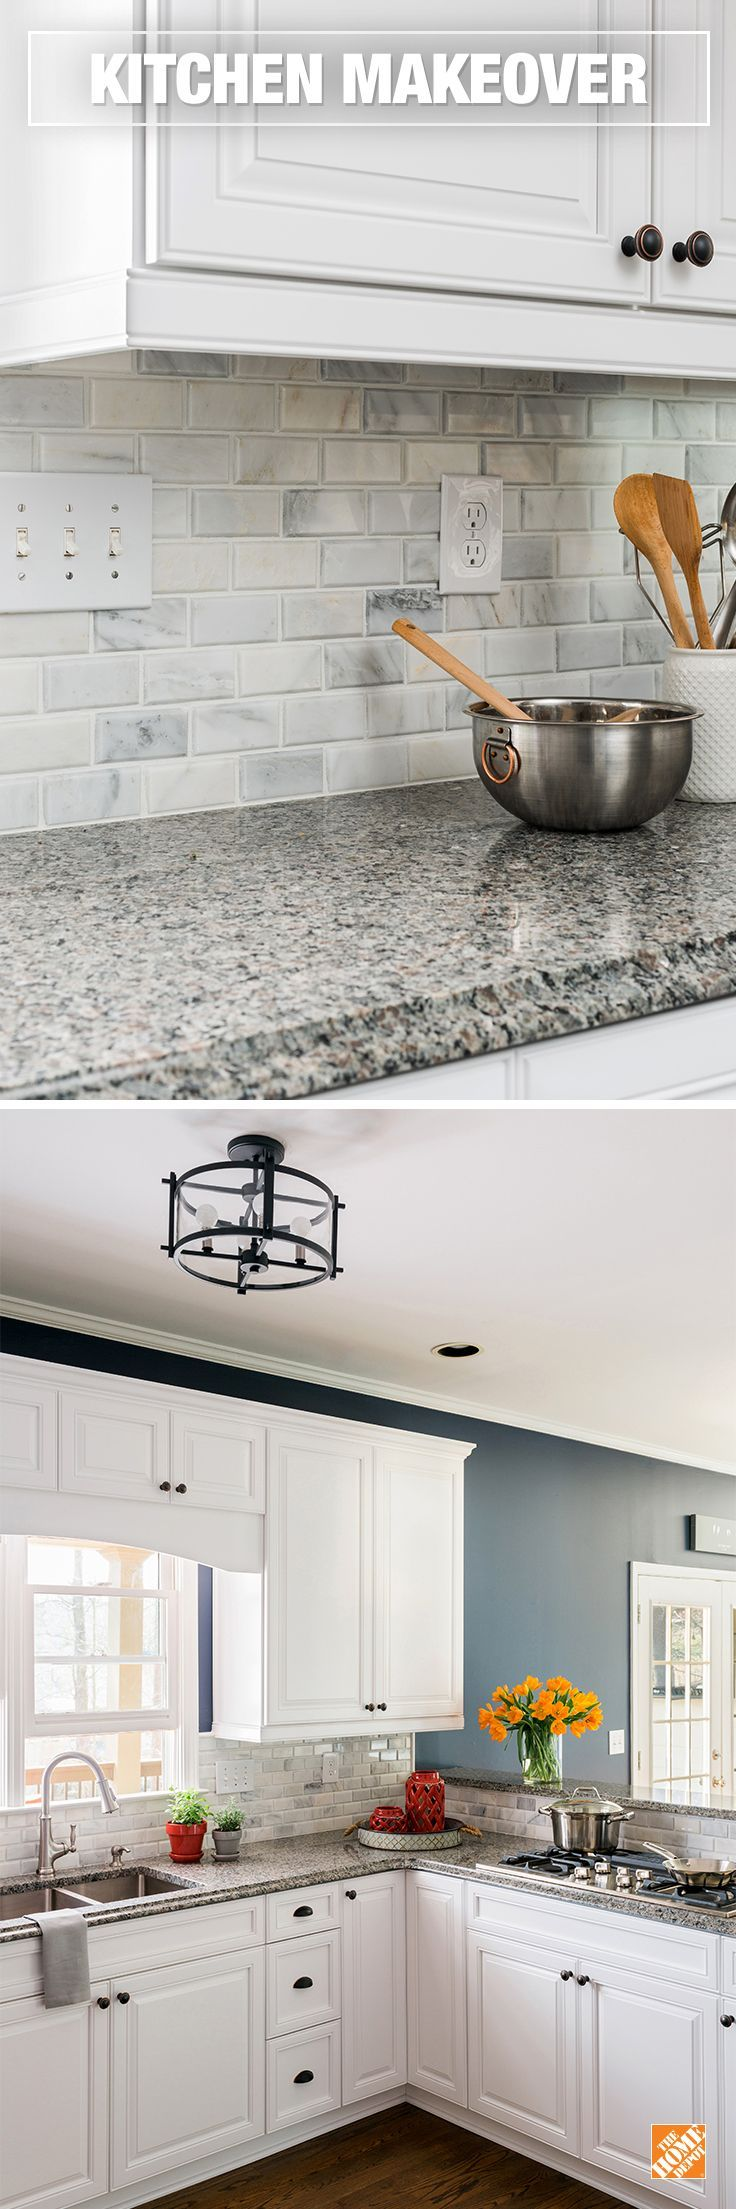 It-doesn't-take-a-complete-remodel-to-transform-the-look-of-your-kitchen-Refacing-your-cabinets-a-wallpaper-wpc5806423